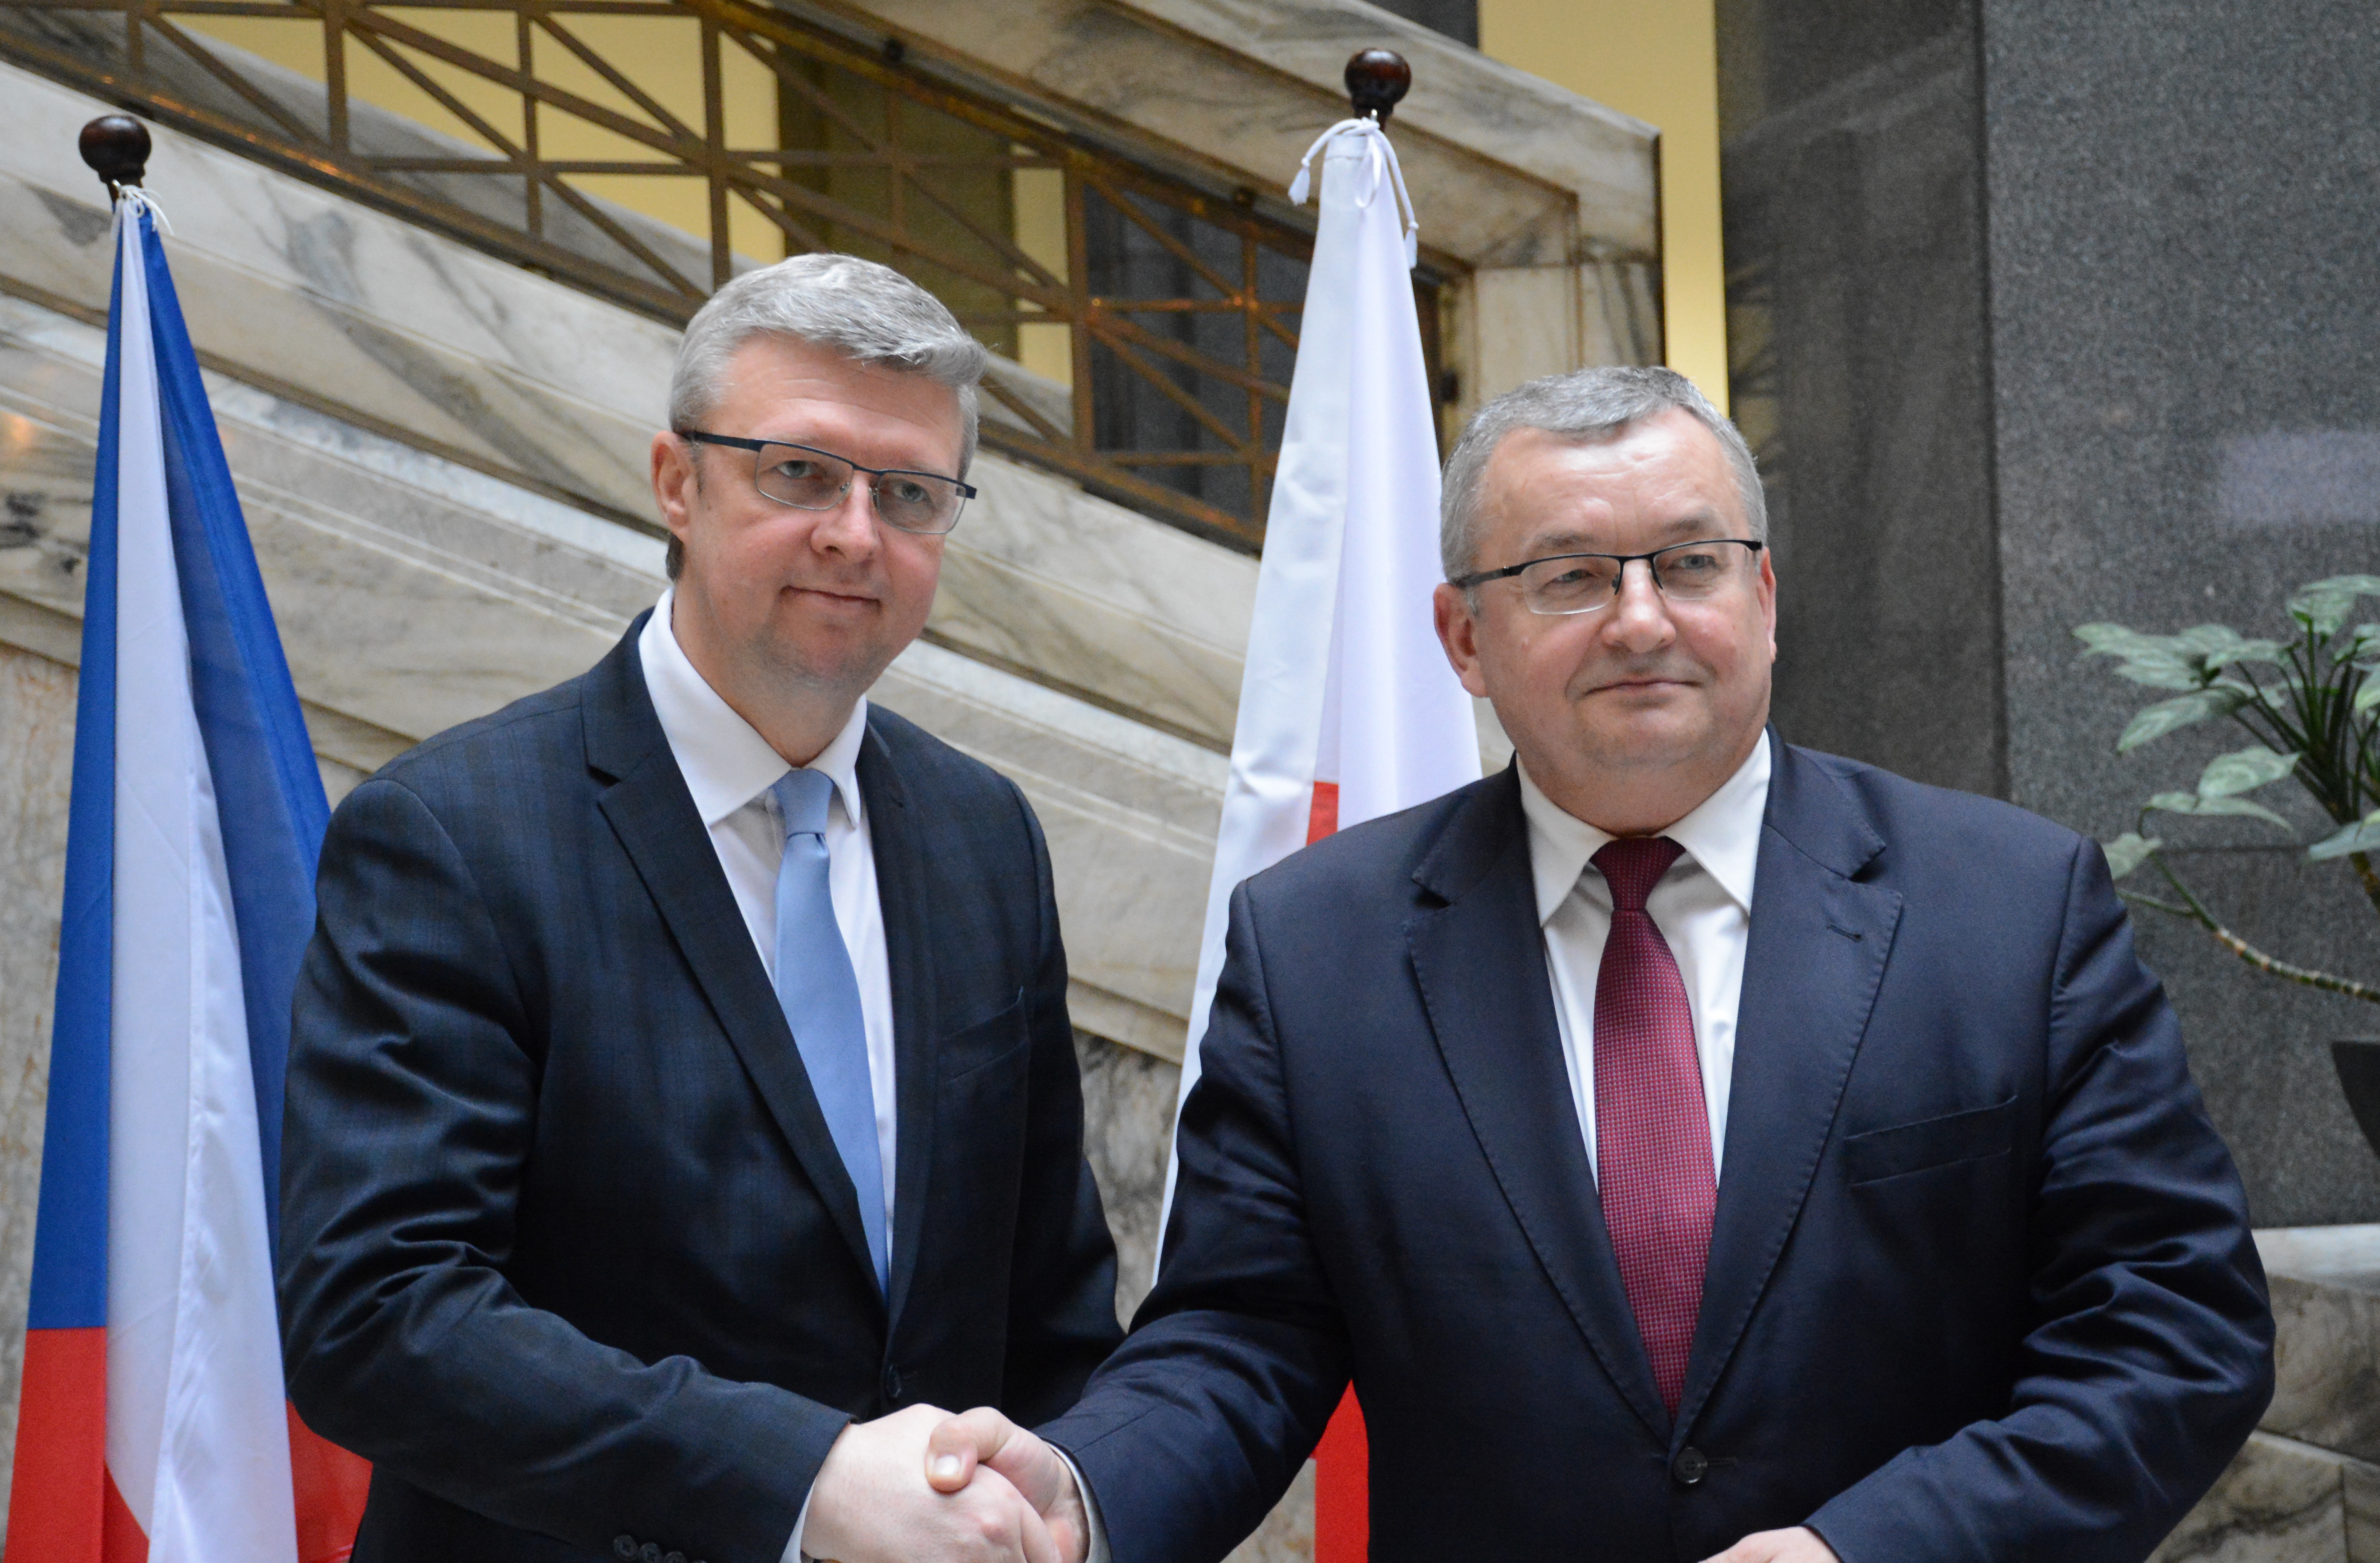 Minister Havlíček: We must speed up the preparation of the completion of the entire D11